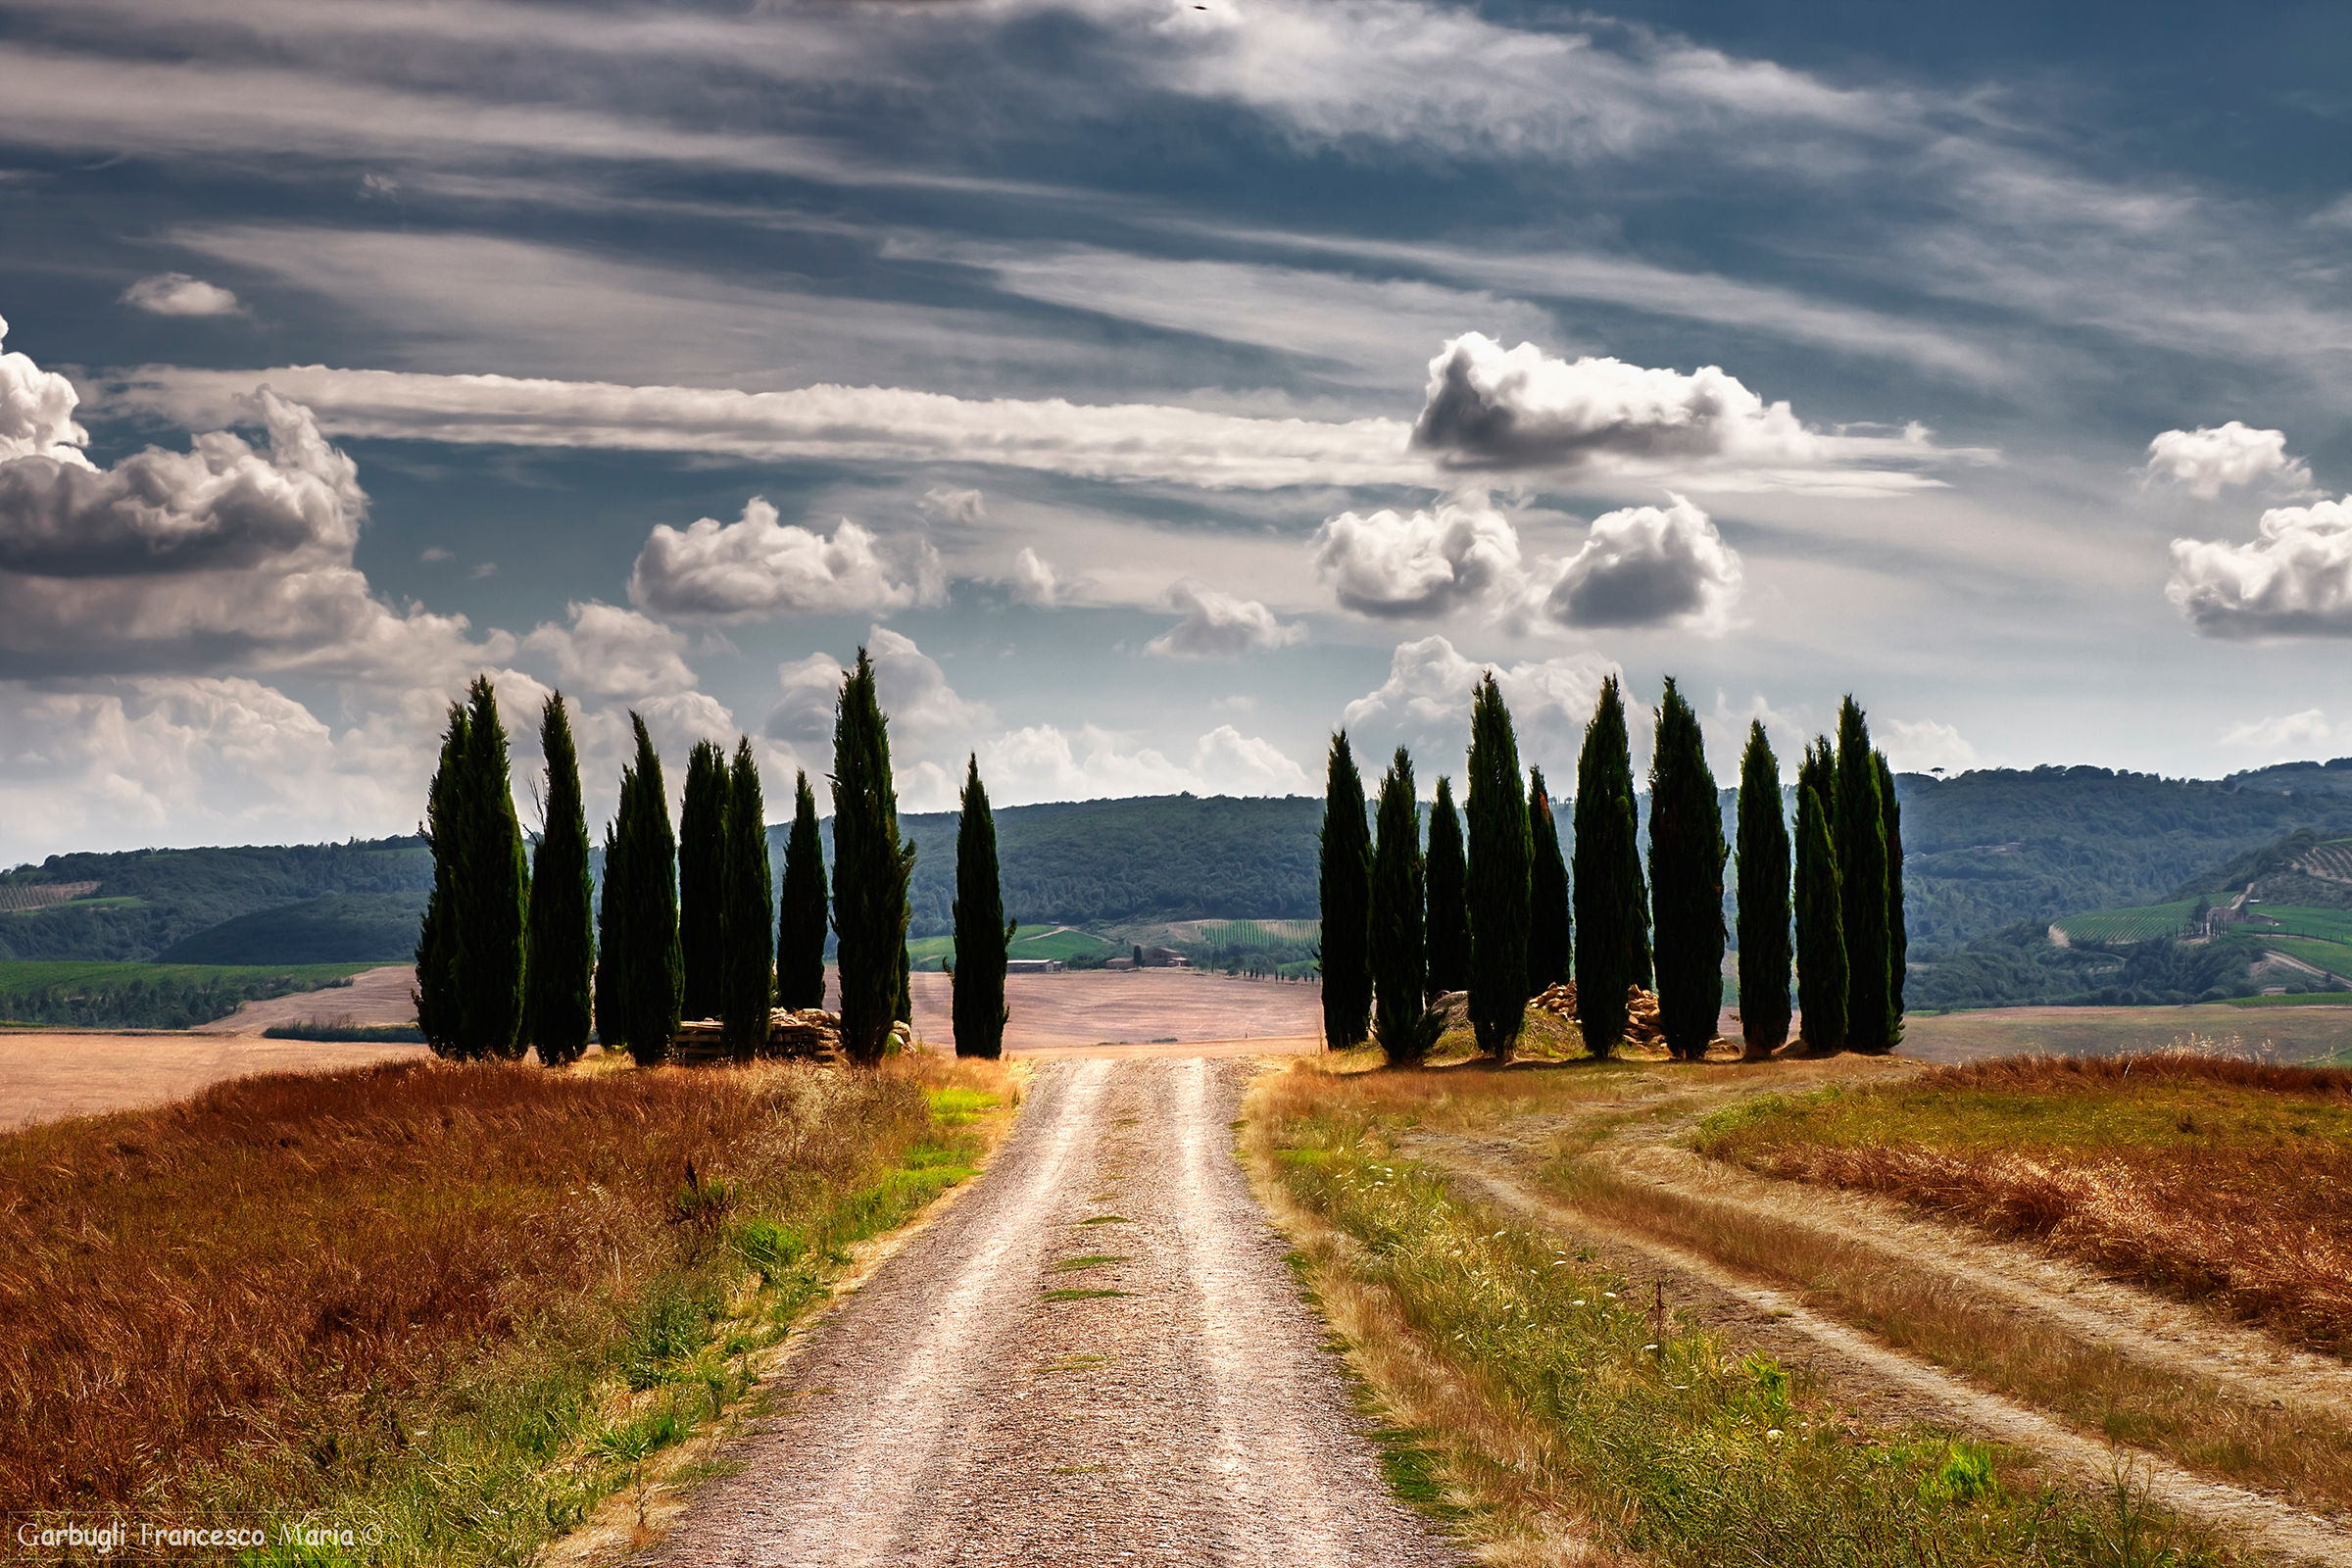 The road between the cypress trees..........